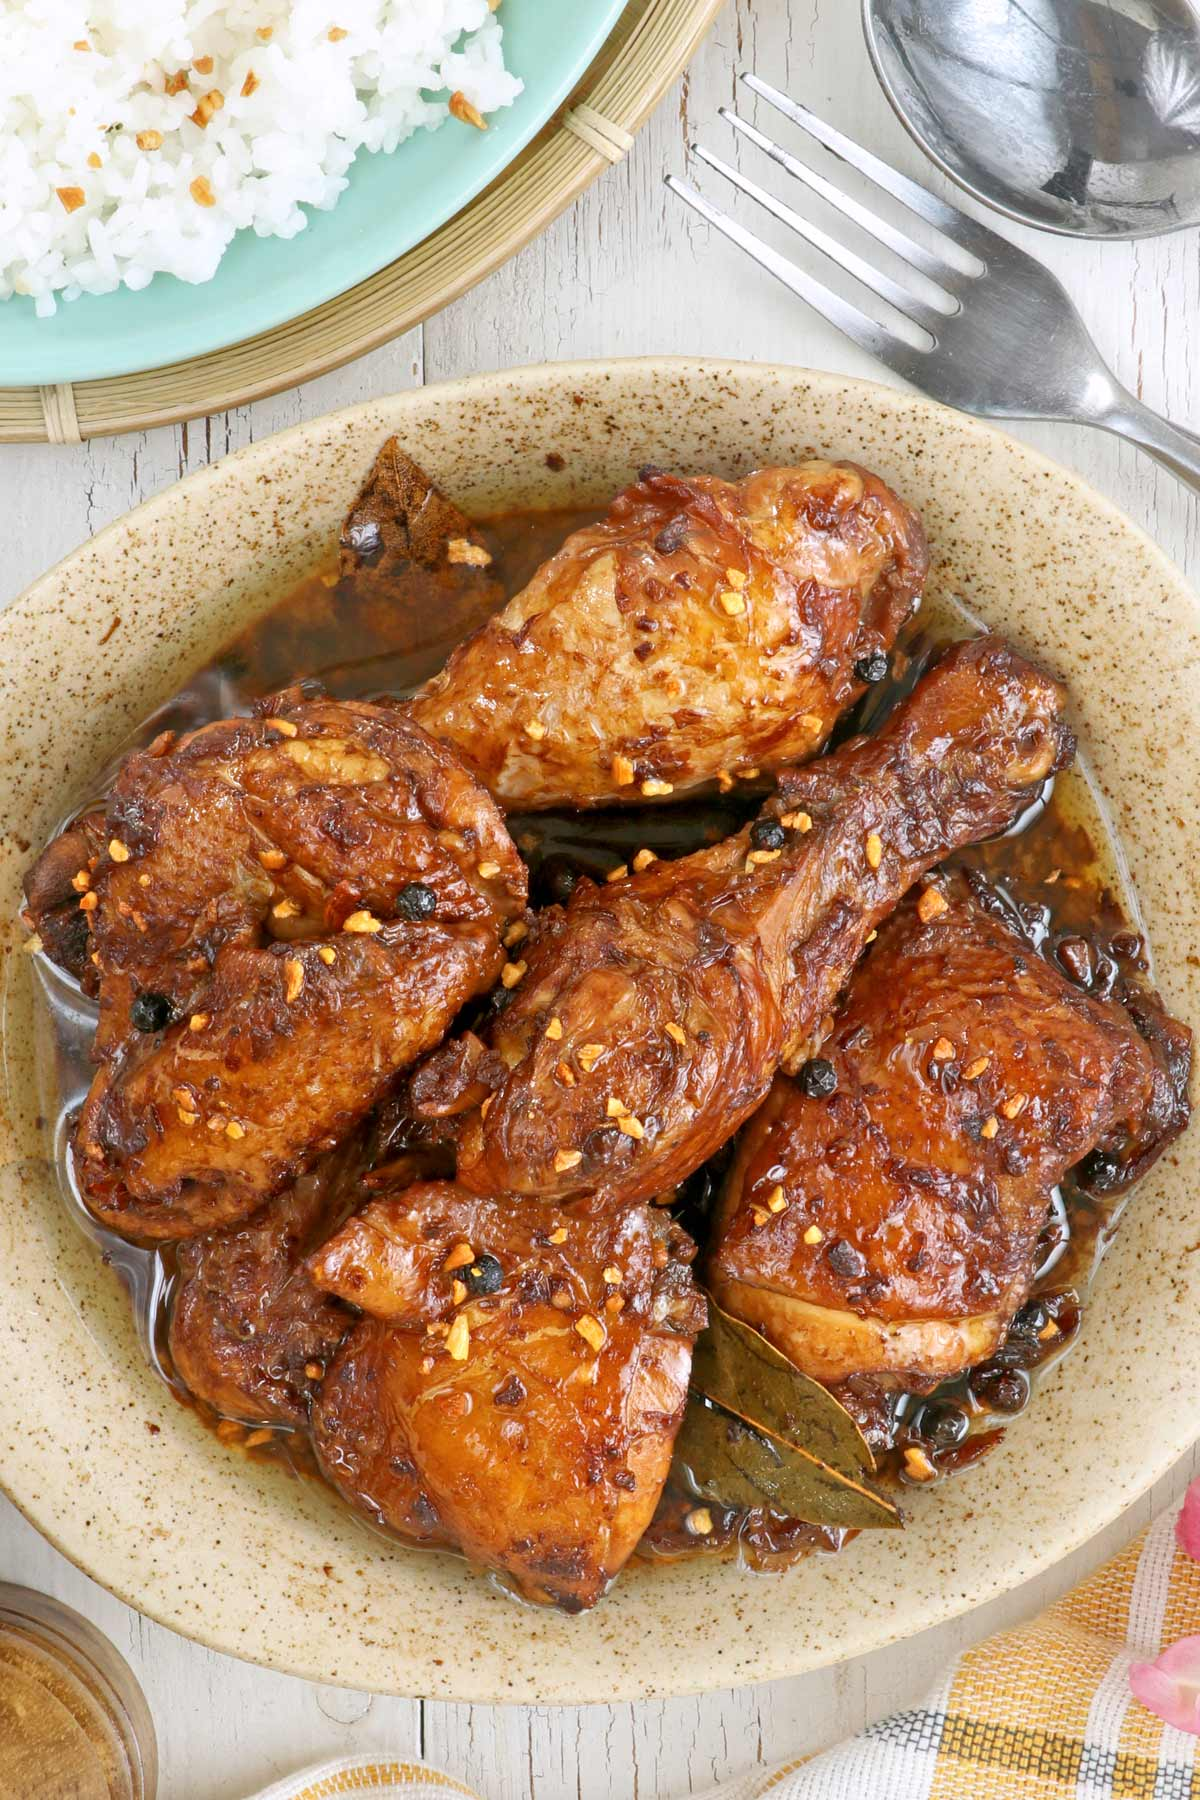 Adobo is the most popular Filipino food, both in the Philippines and abroad. It is, for us, a taste of home. Check this recipe of Adobo with toasted garlic. | www.foxyfolksy.com